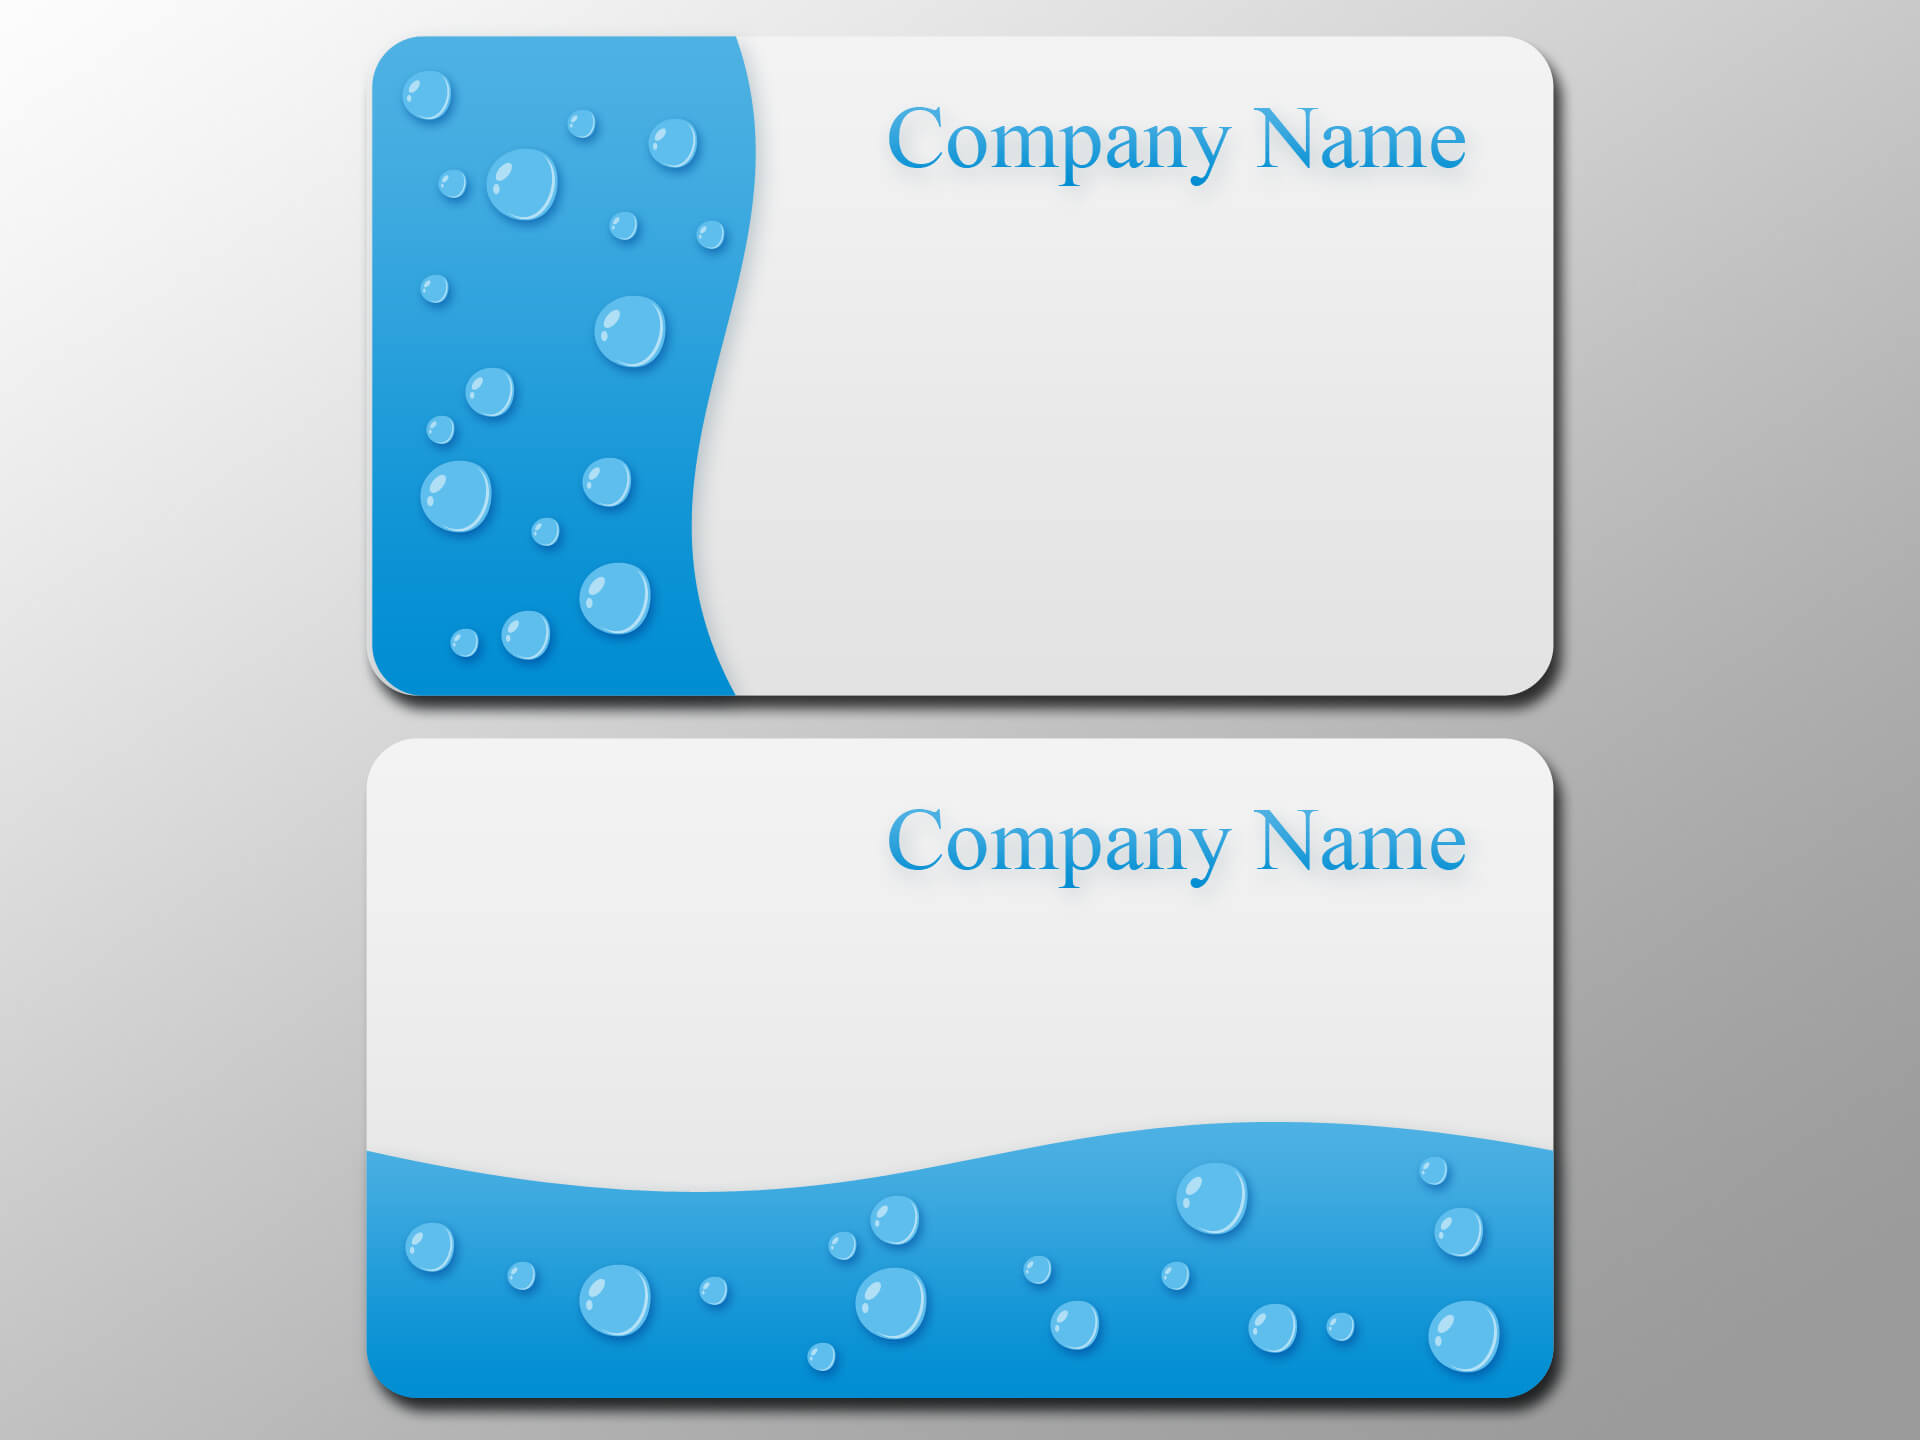 Business Card Template Photoshop - Blank Business Card regarding Blank Business Card Template Photoshop